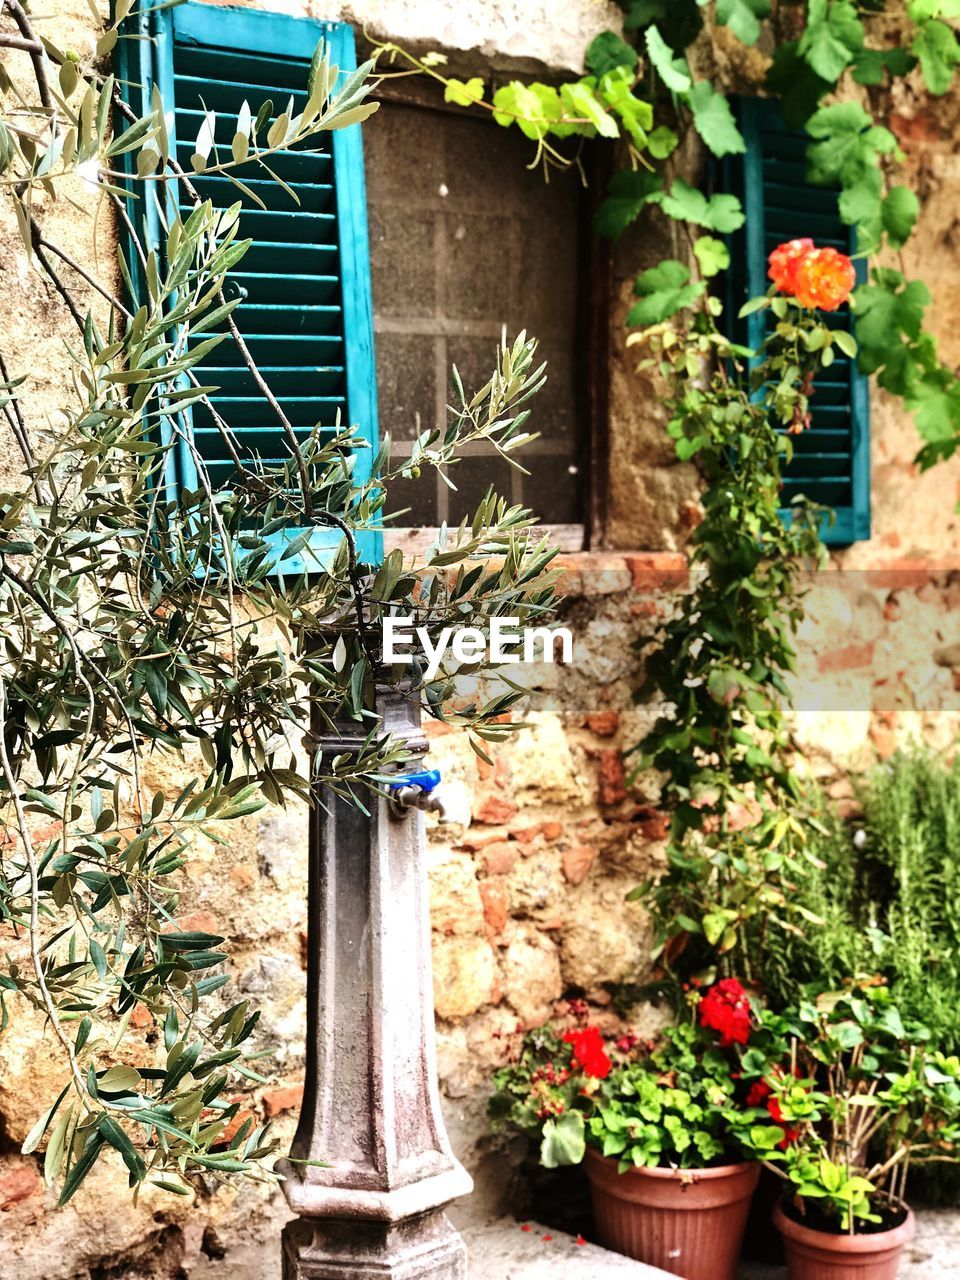 plant, growth, flower, flowering plant, built structure, architecture, nature, building exterior, potted plant, day, no people, building, house, front or back yard, outdoors, leaf, window, plant part, fragility, green color, flower pot, gardening, houseplant